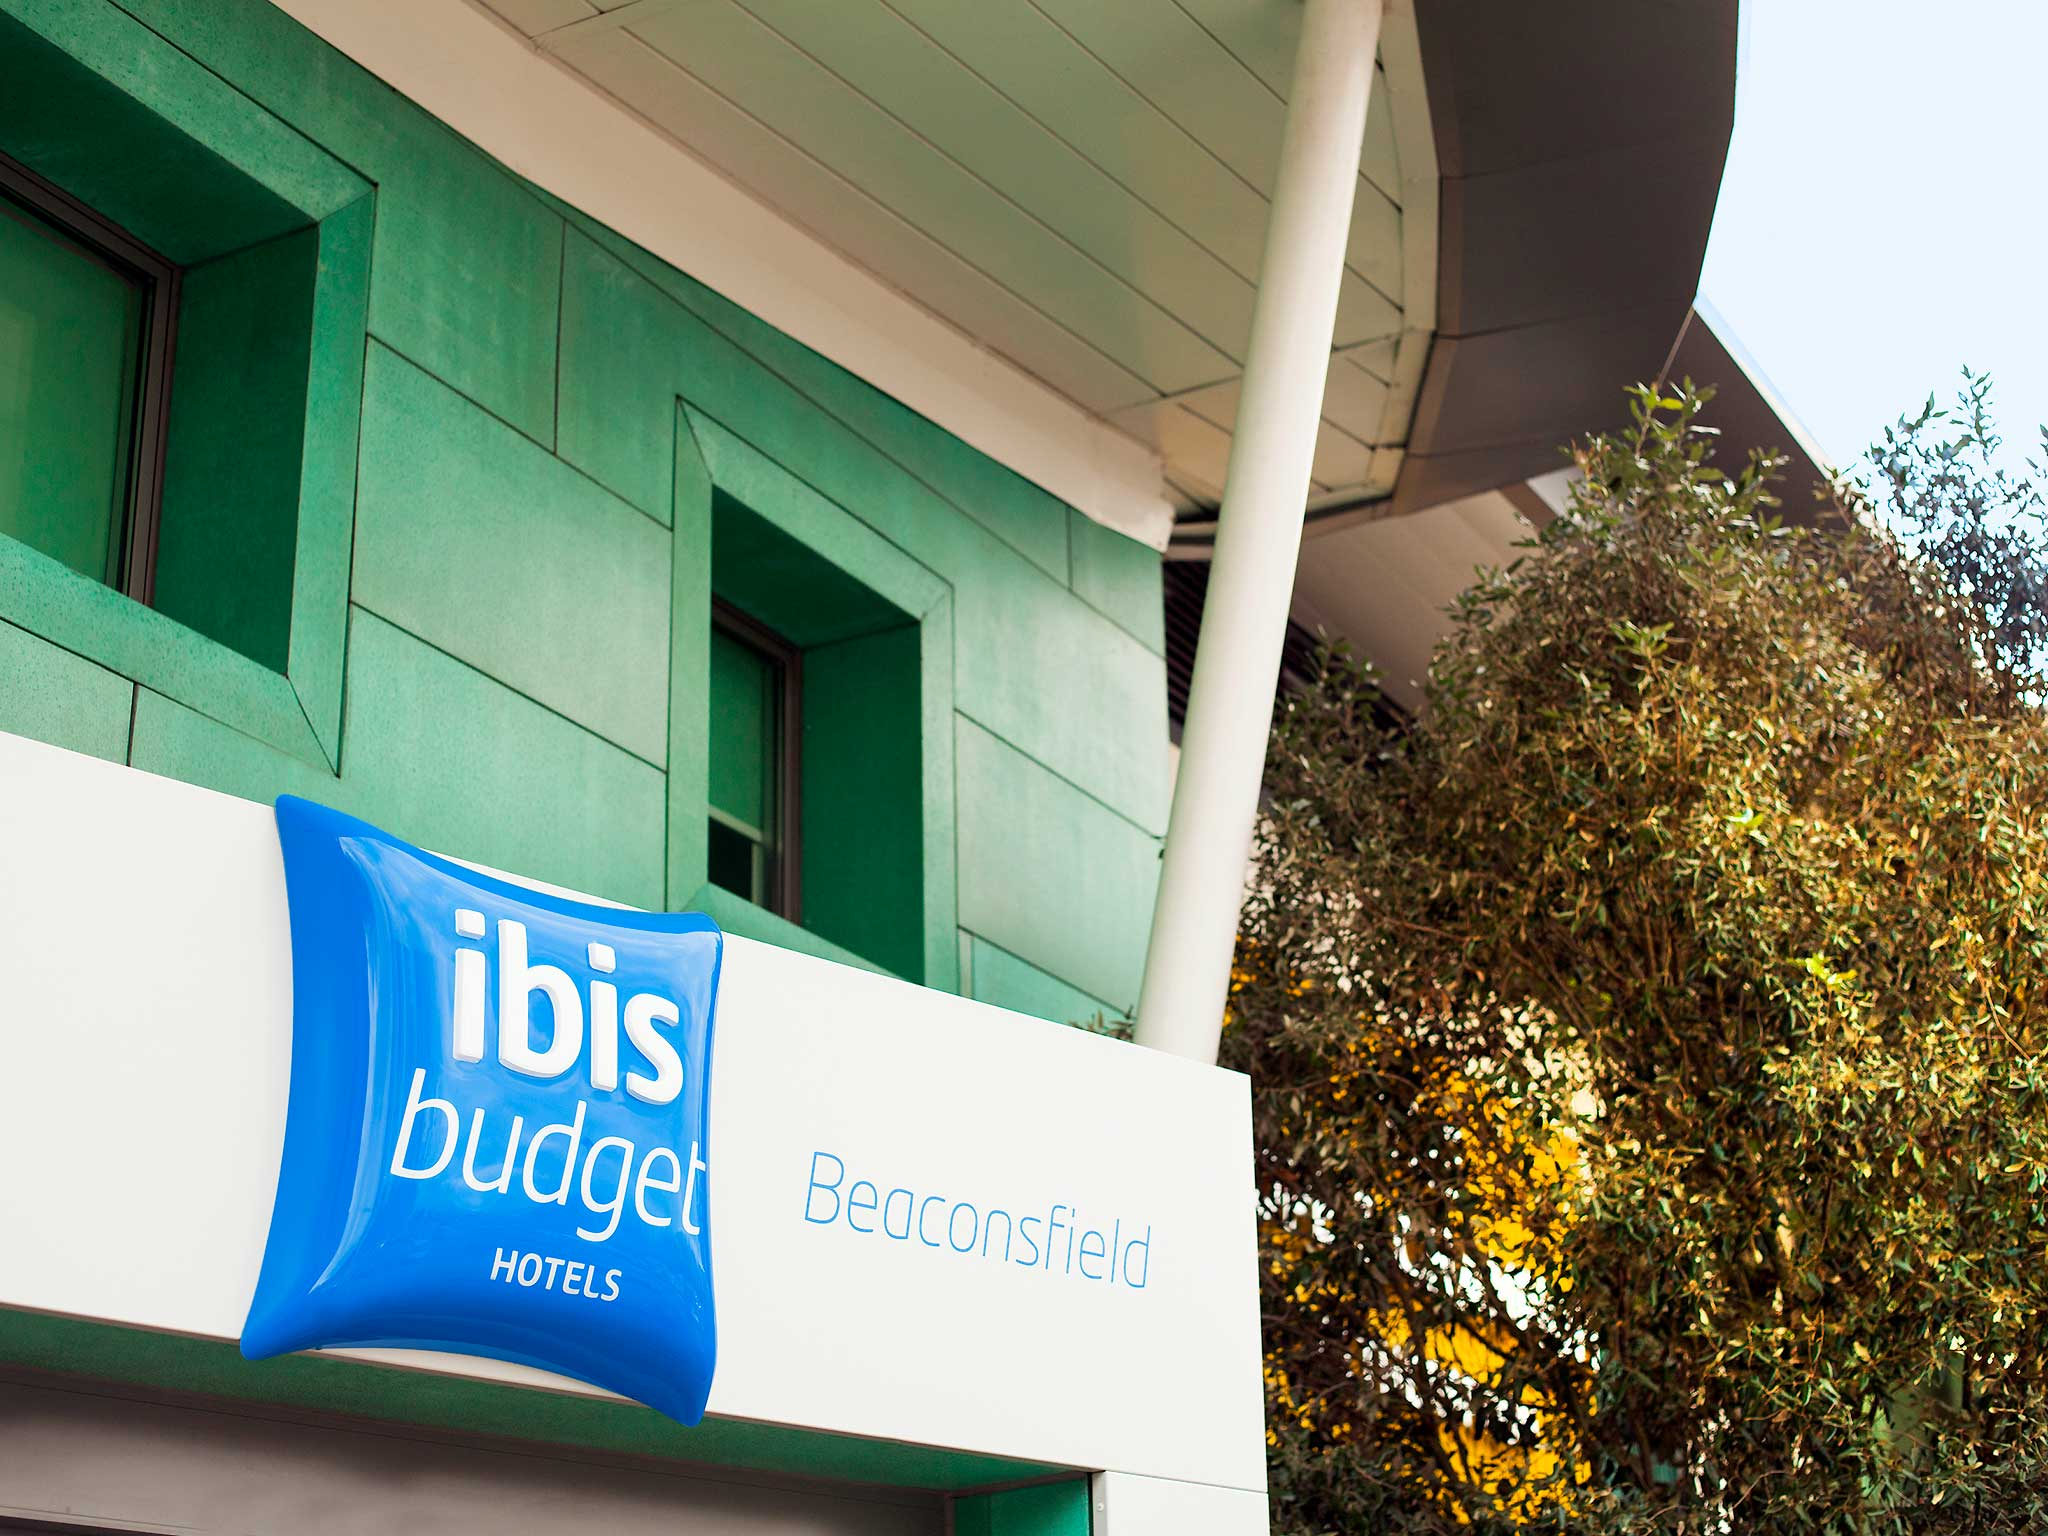 Hotel – ibis budget Beaconsfield